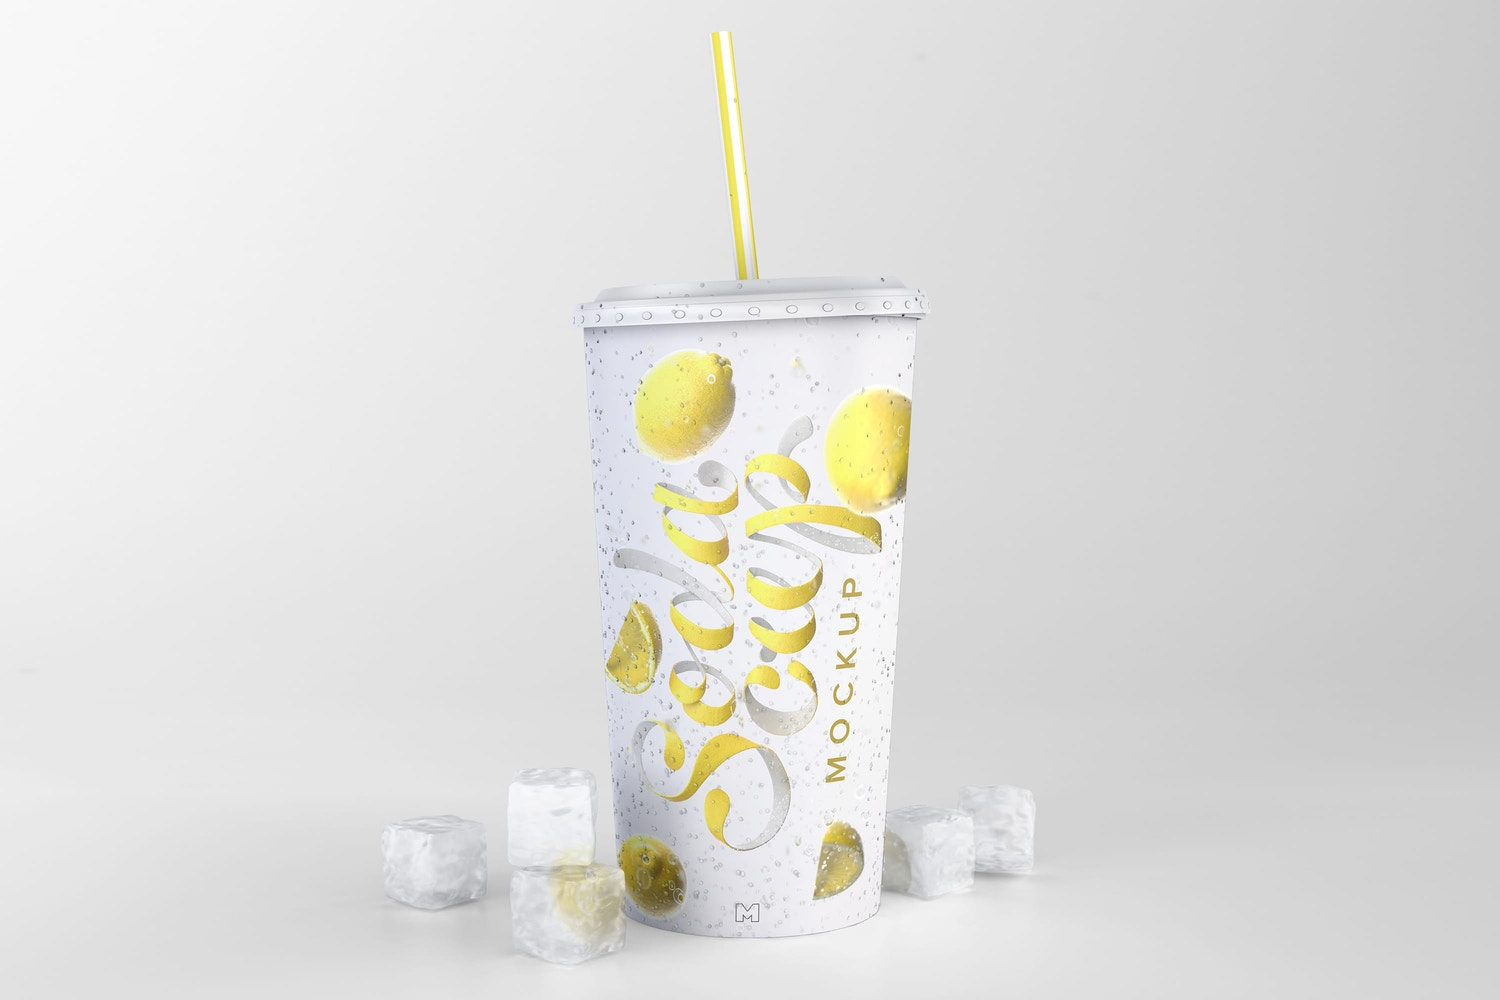 Soda Cup Mockup 02 by Original Mockups on Original Mockups